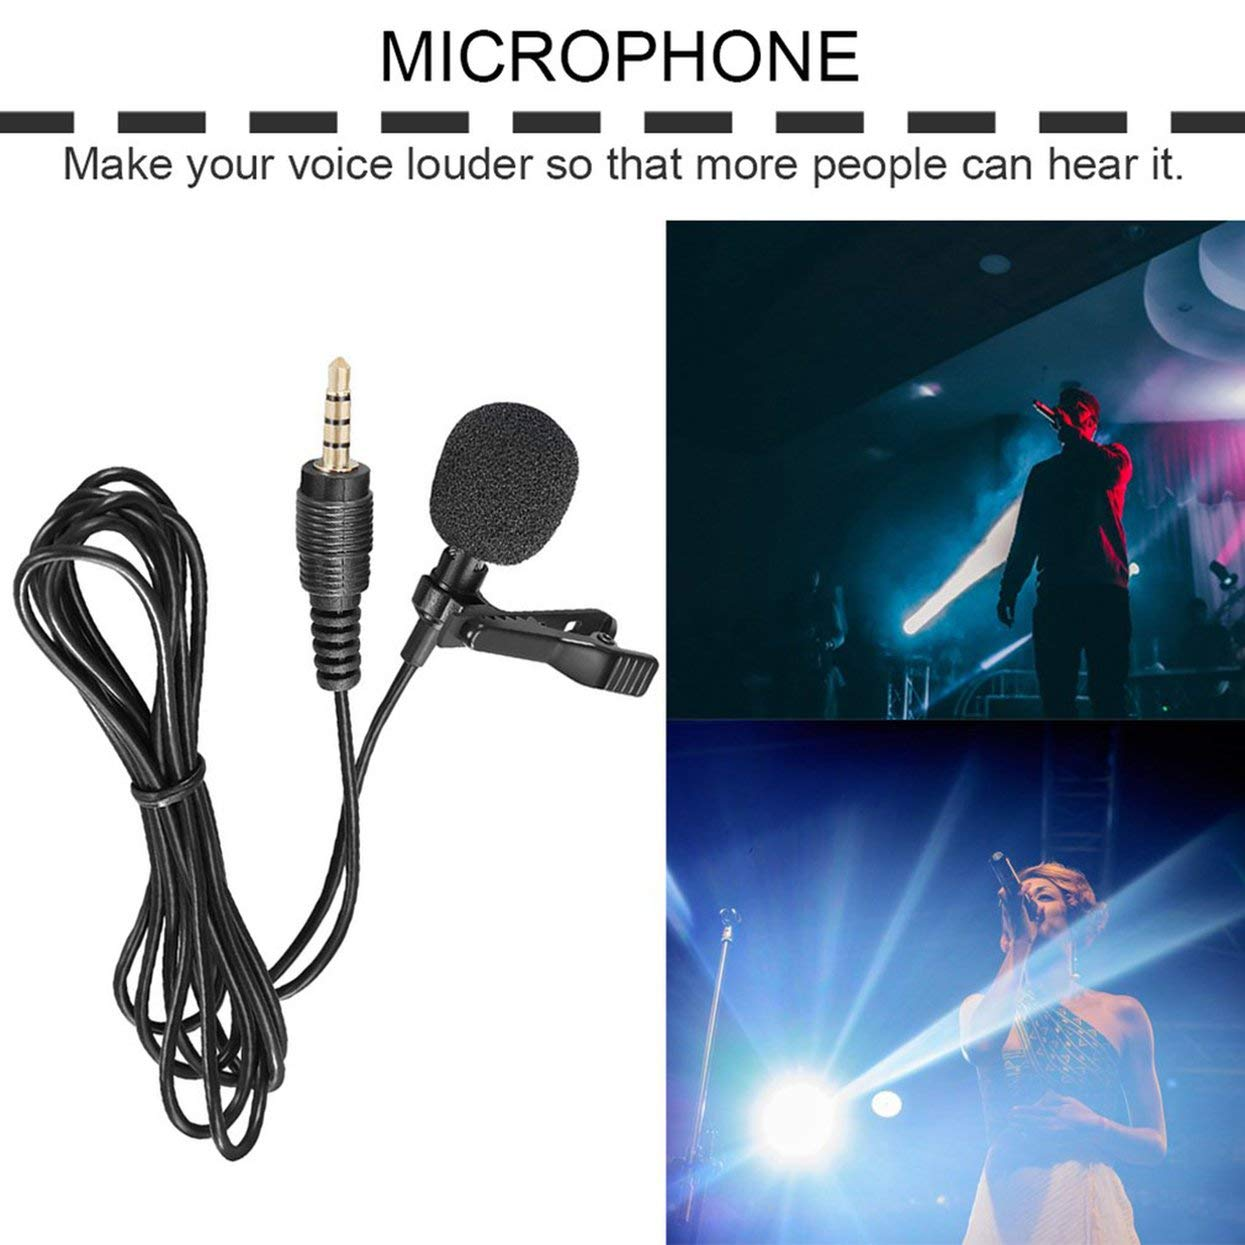 Lamijua Mini Lavalier Mic Microphone Case for iPhone Smartphone Recording Pc Clip-On Lapel Support Microphone Answering Phone